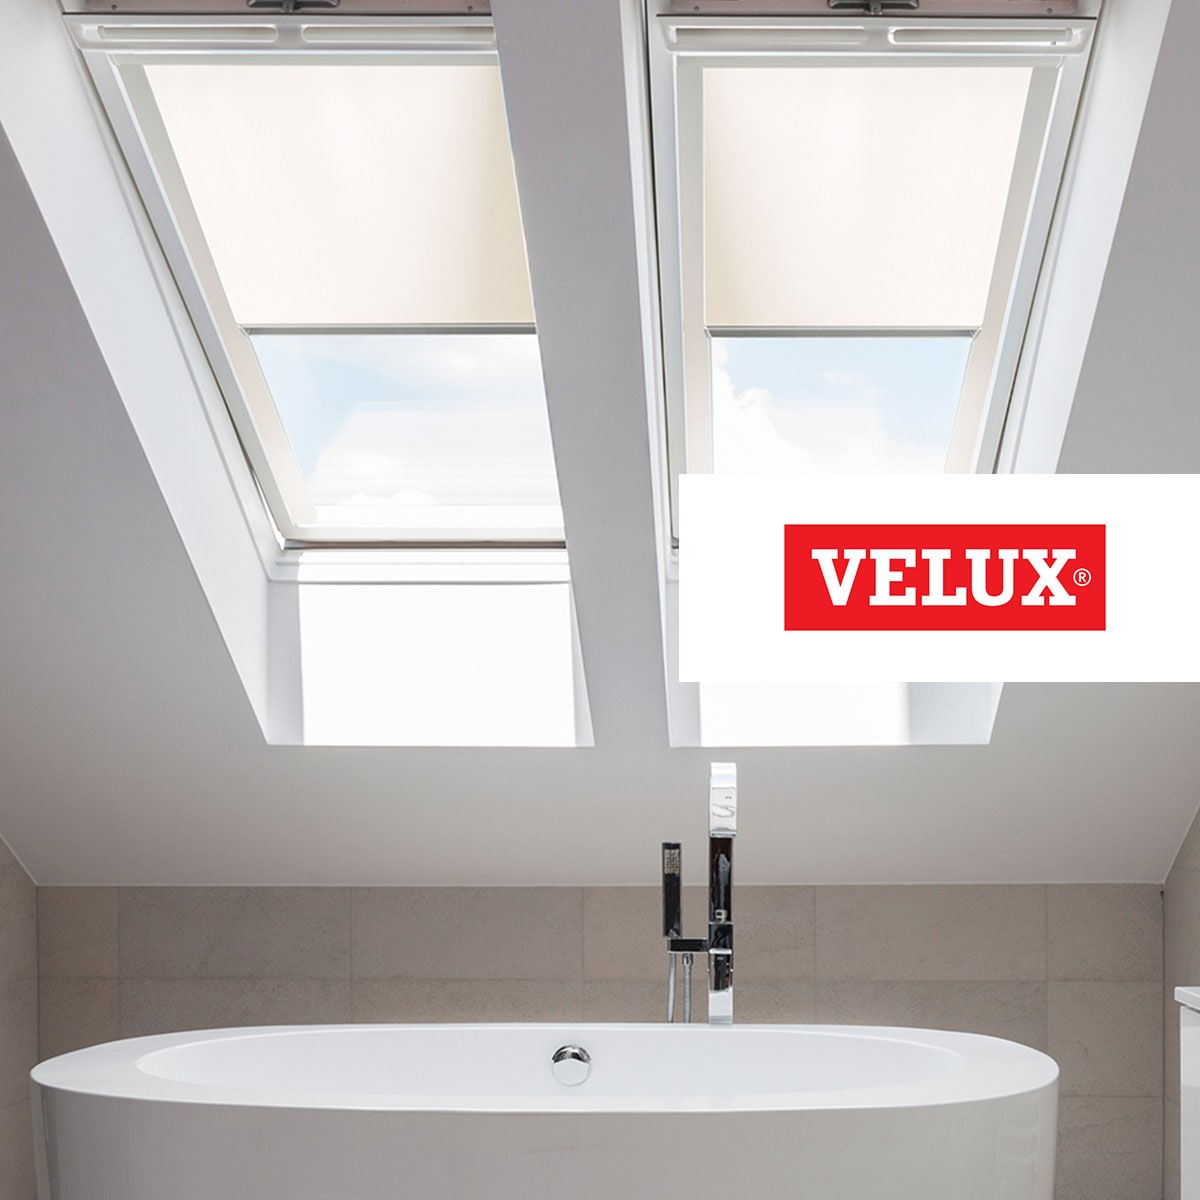 velux dachfenster austausch gegen ein neues velux fenster. Black Bedroom Furniture Sets. Home Design Ideas